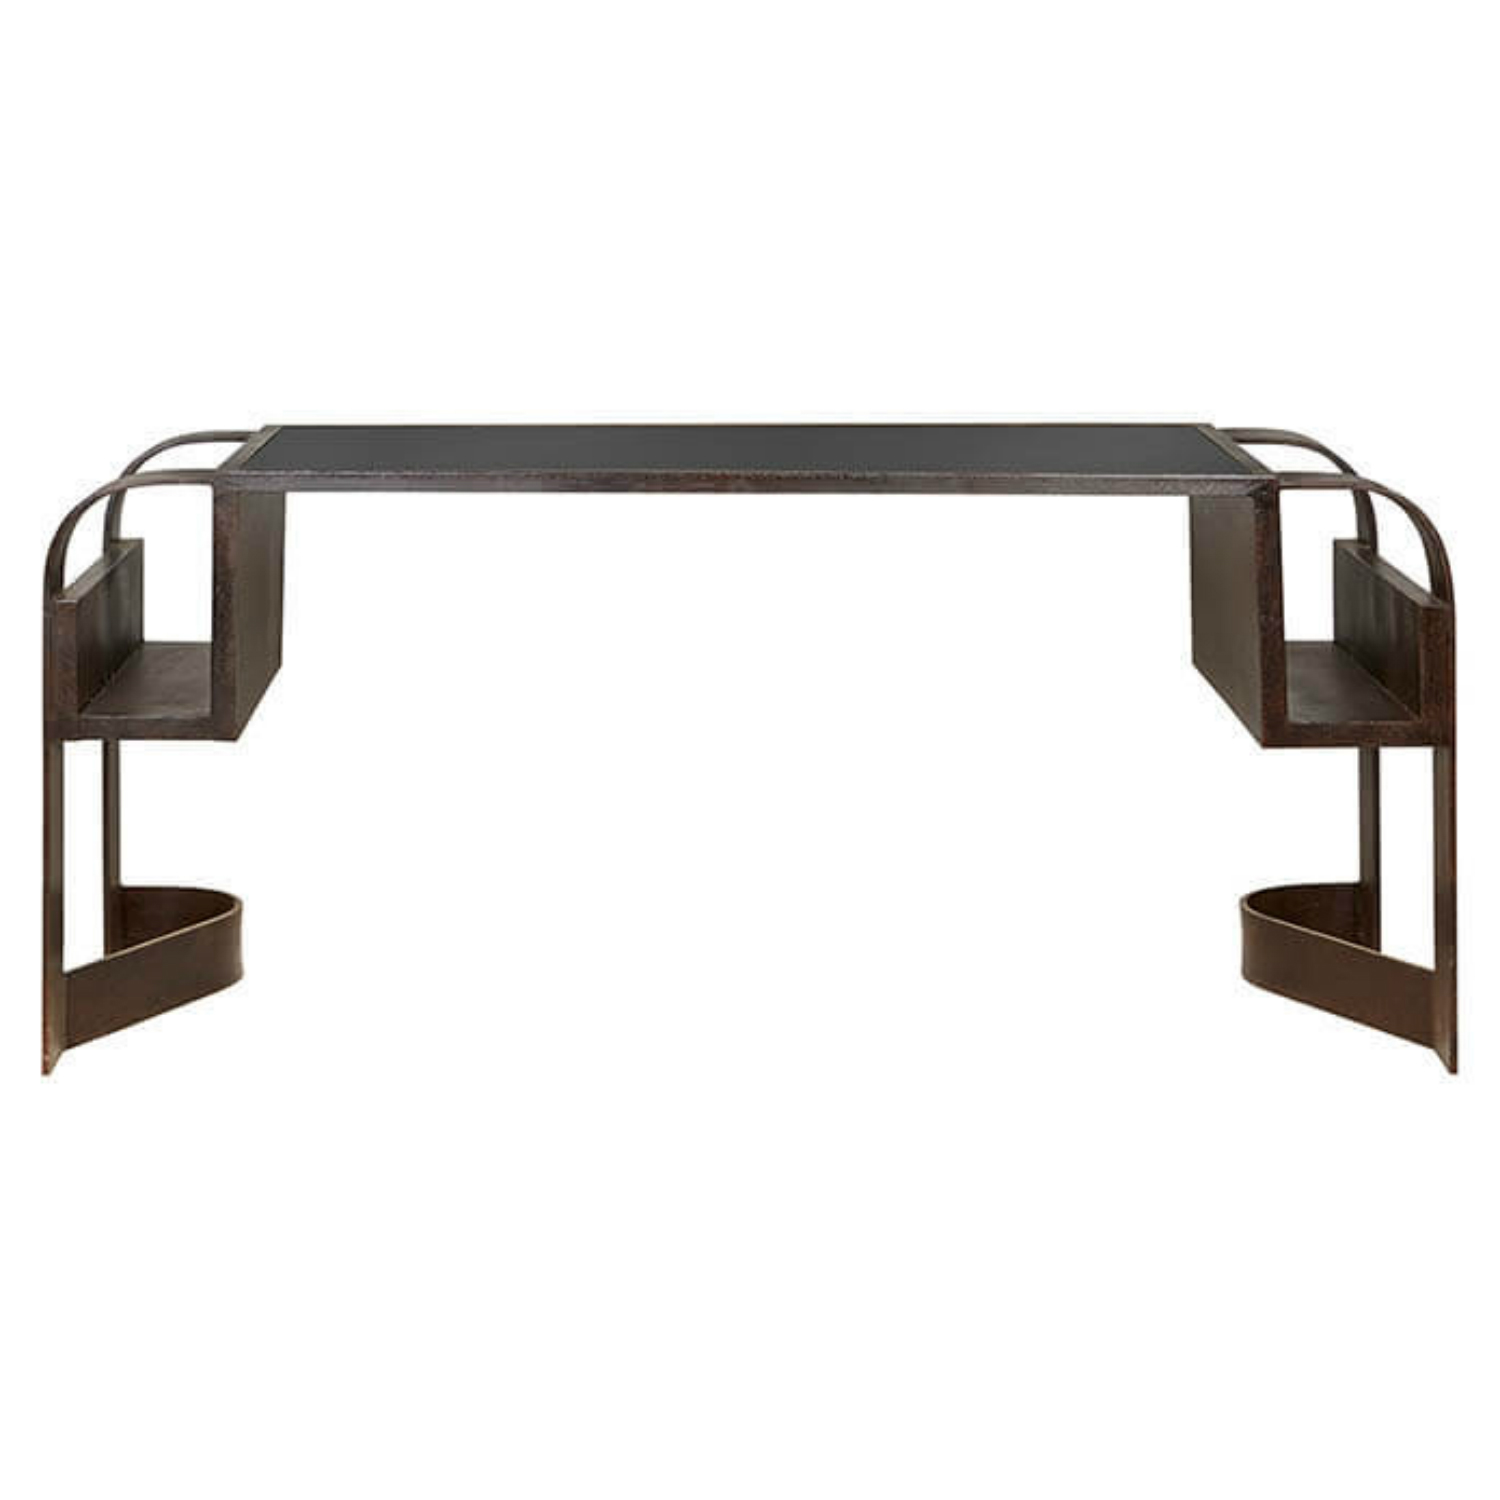 Lindon Industrial Loft Iron Recycled Black Rubber Desk